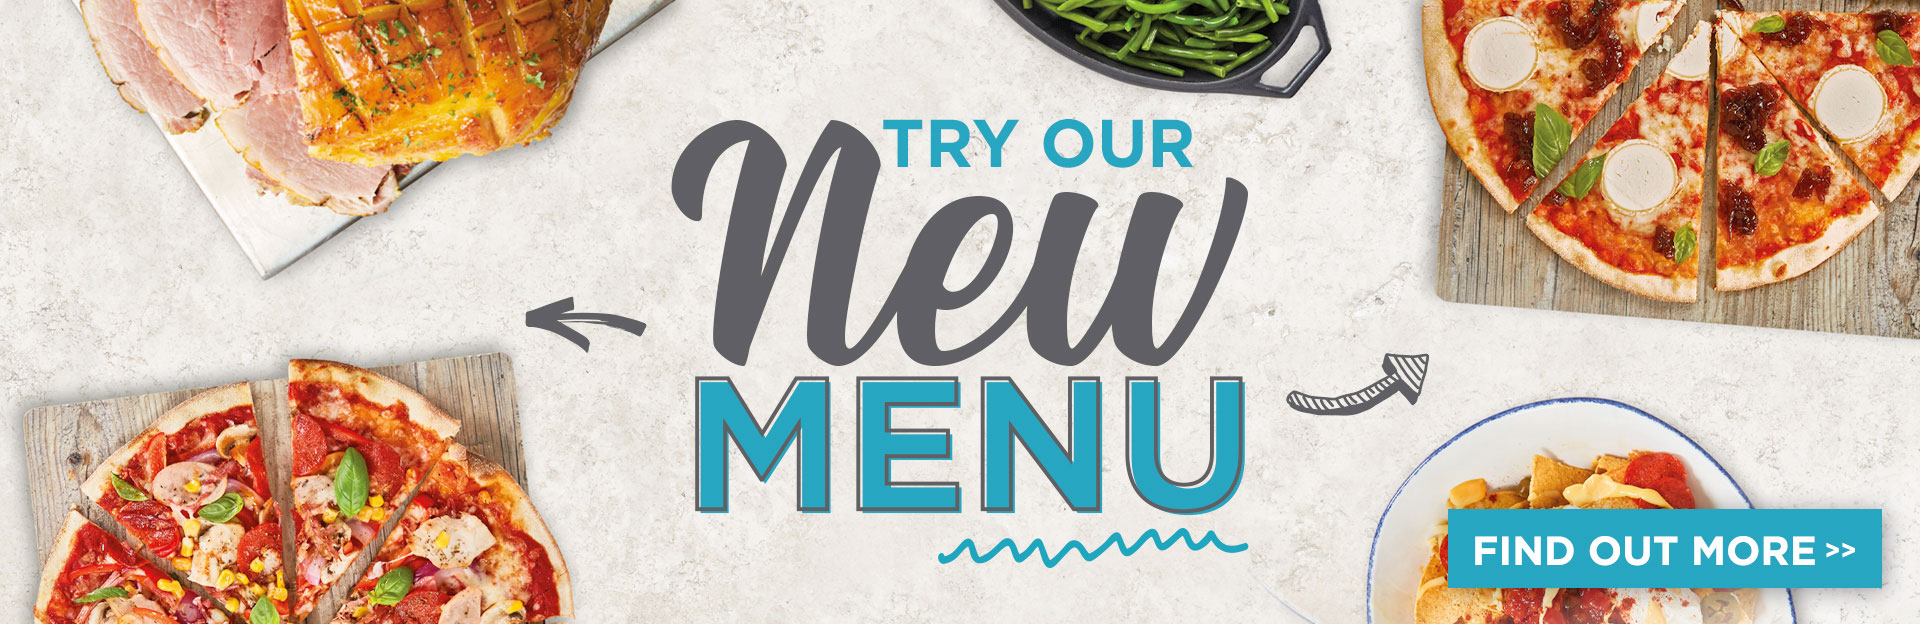 New menu at The Wheatsheaf Inn